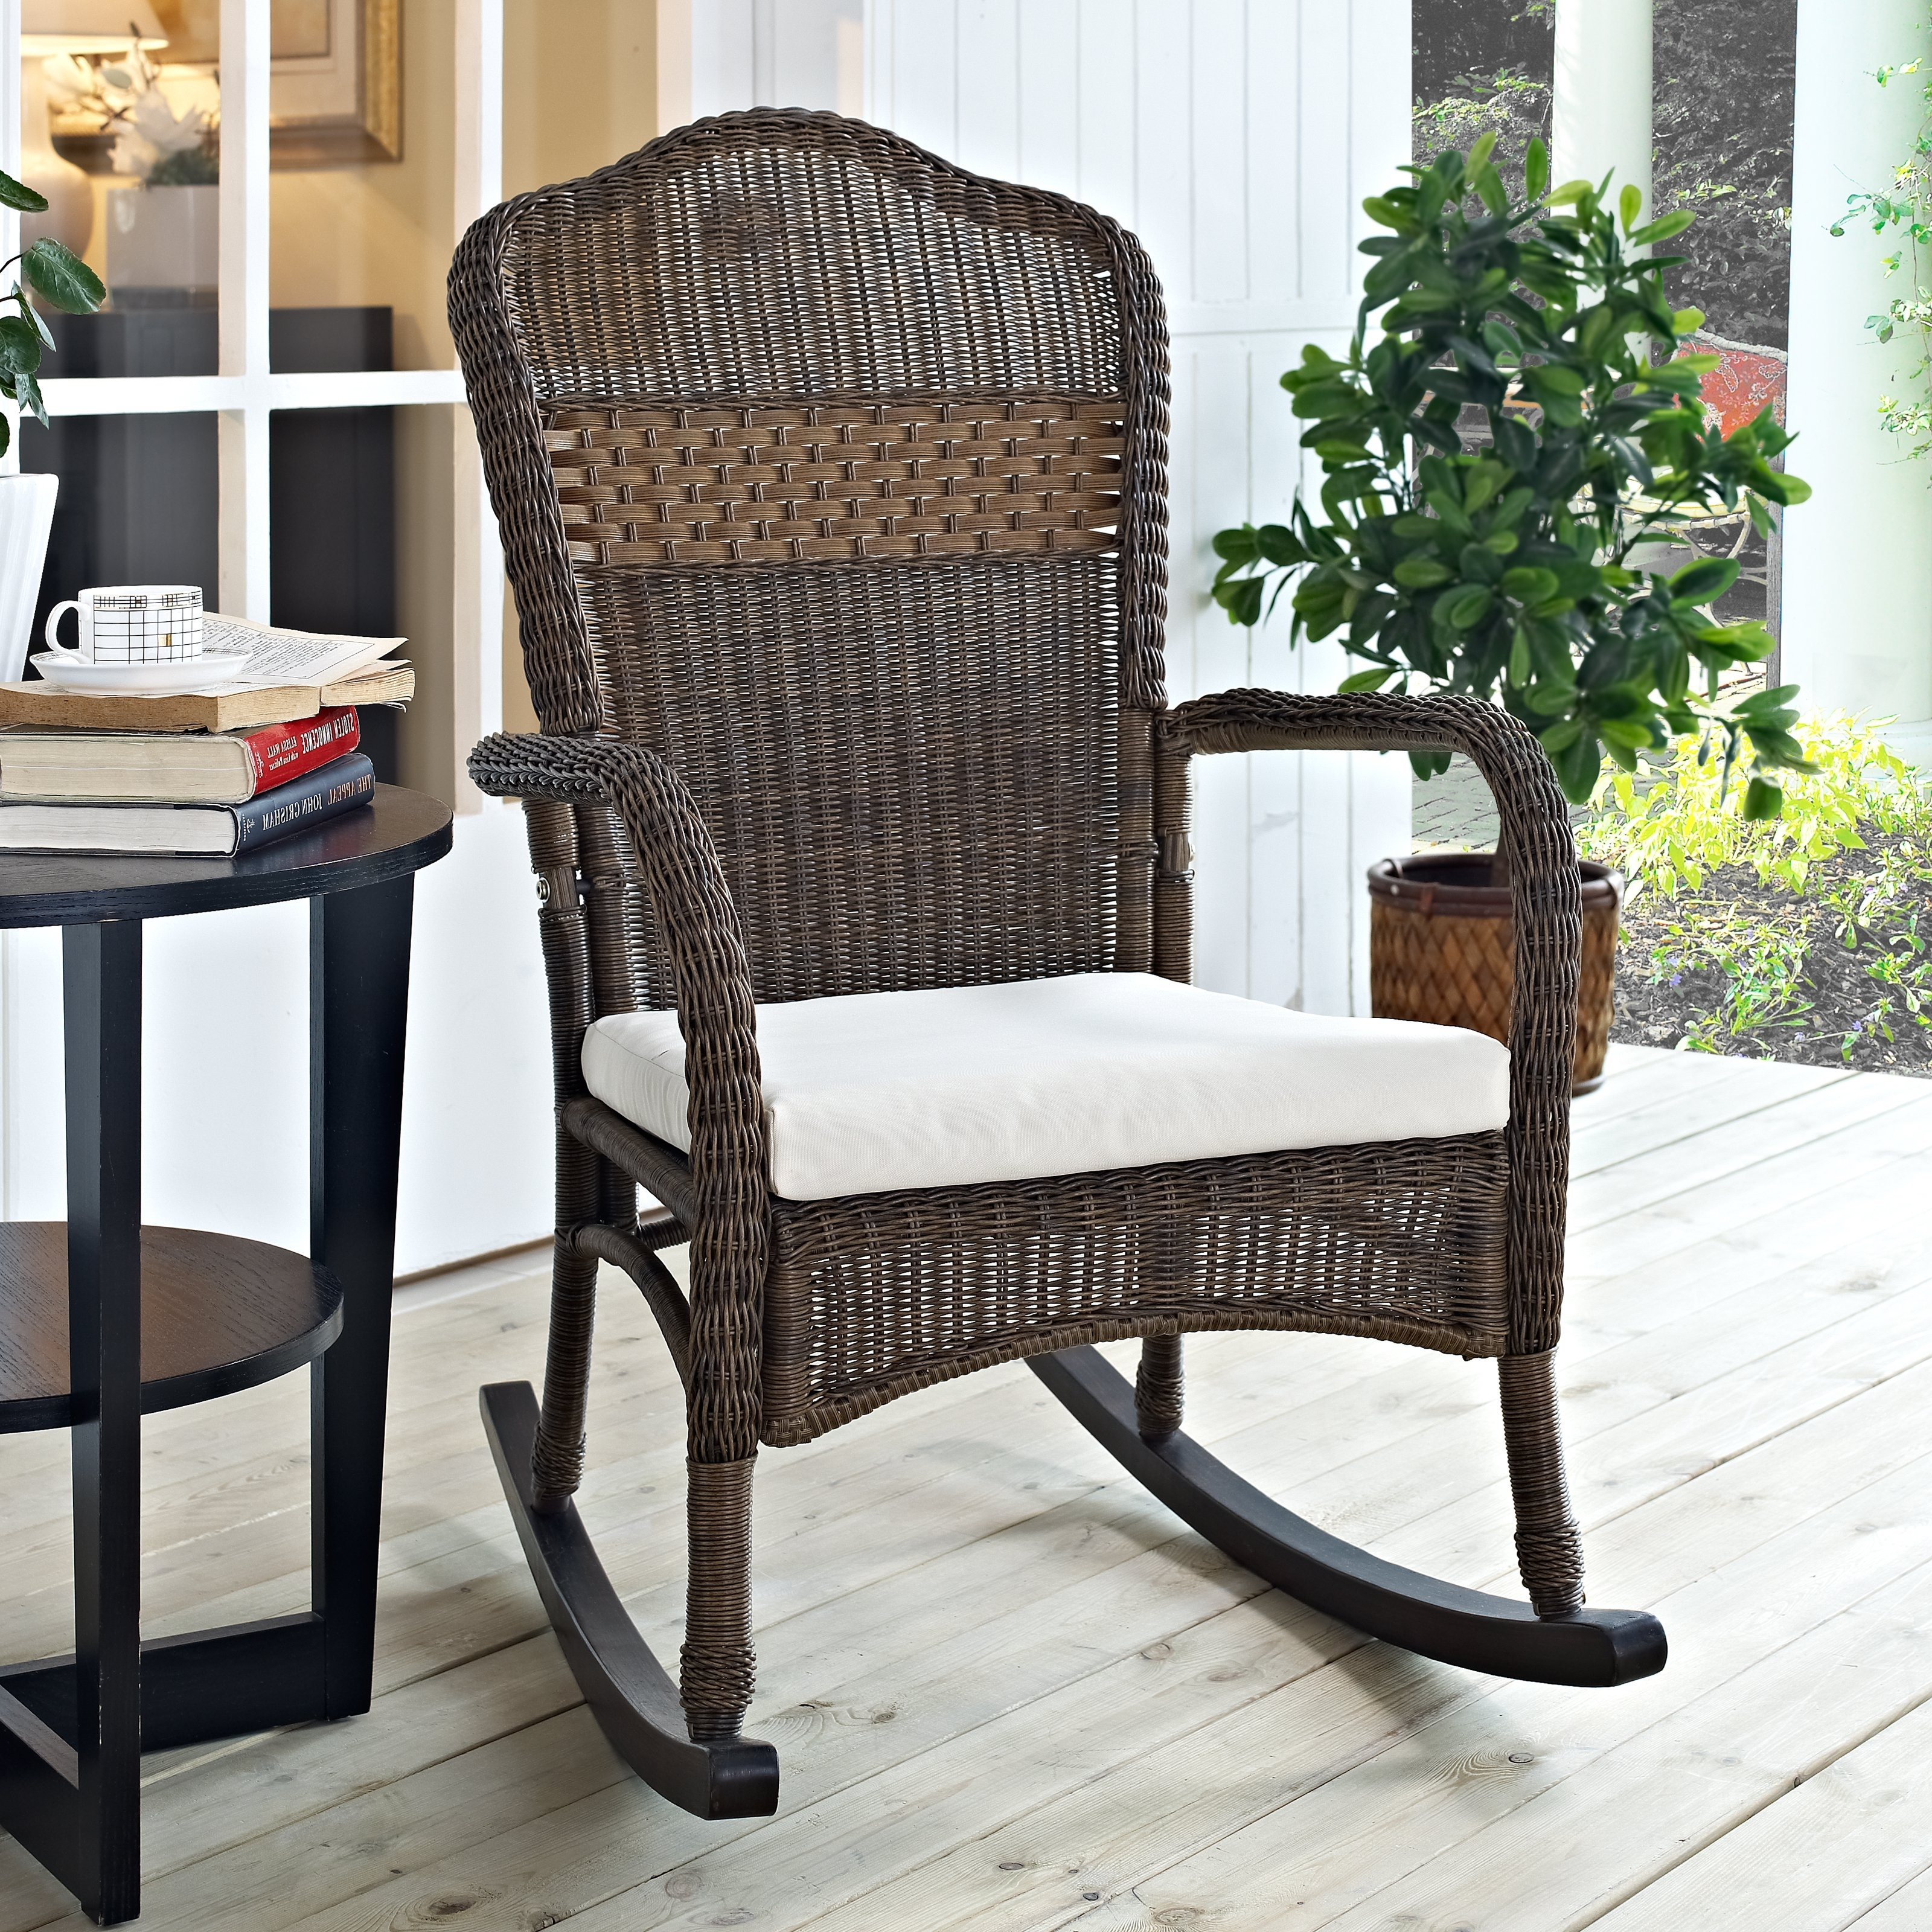 Newest Best Outdoor Porch Rocking Chairs – Outdoor Designs For Patio Furniture Rocking Benches (View 5 of 15)